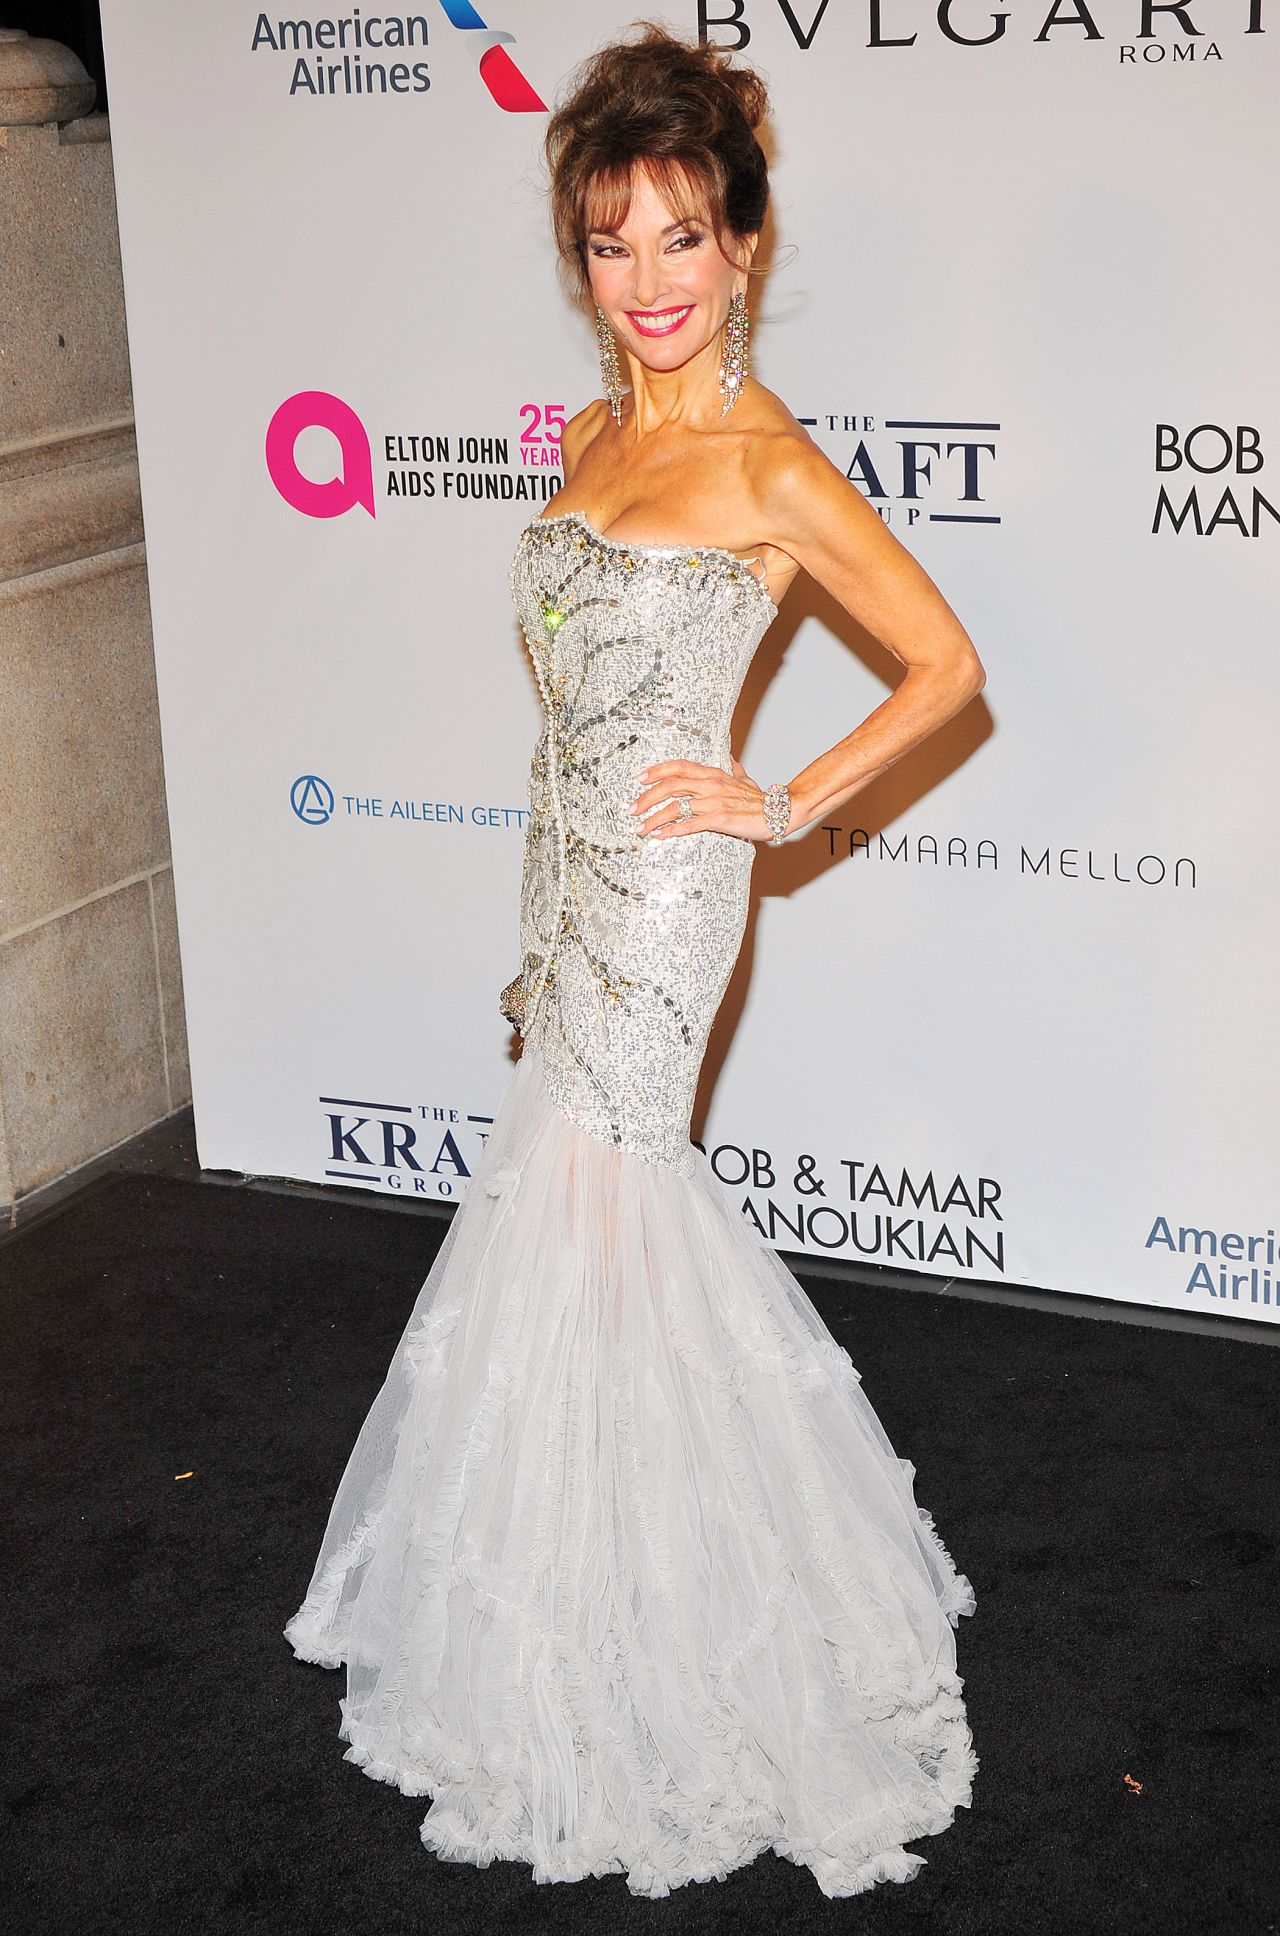 Susan Lucci Elton John Aids Foundation 25 Year